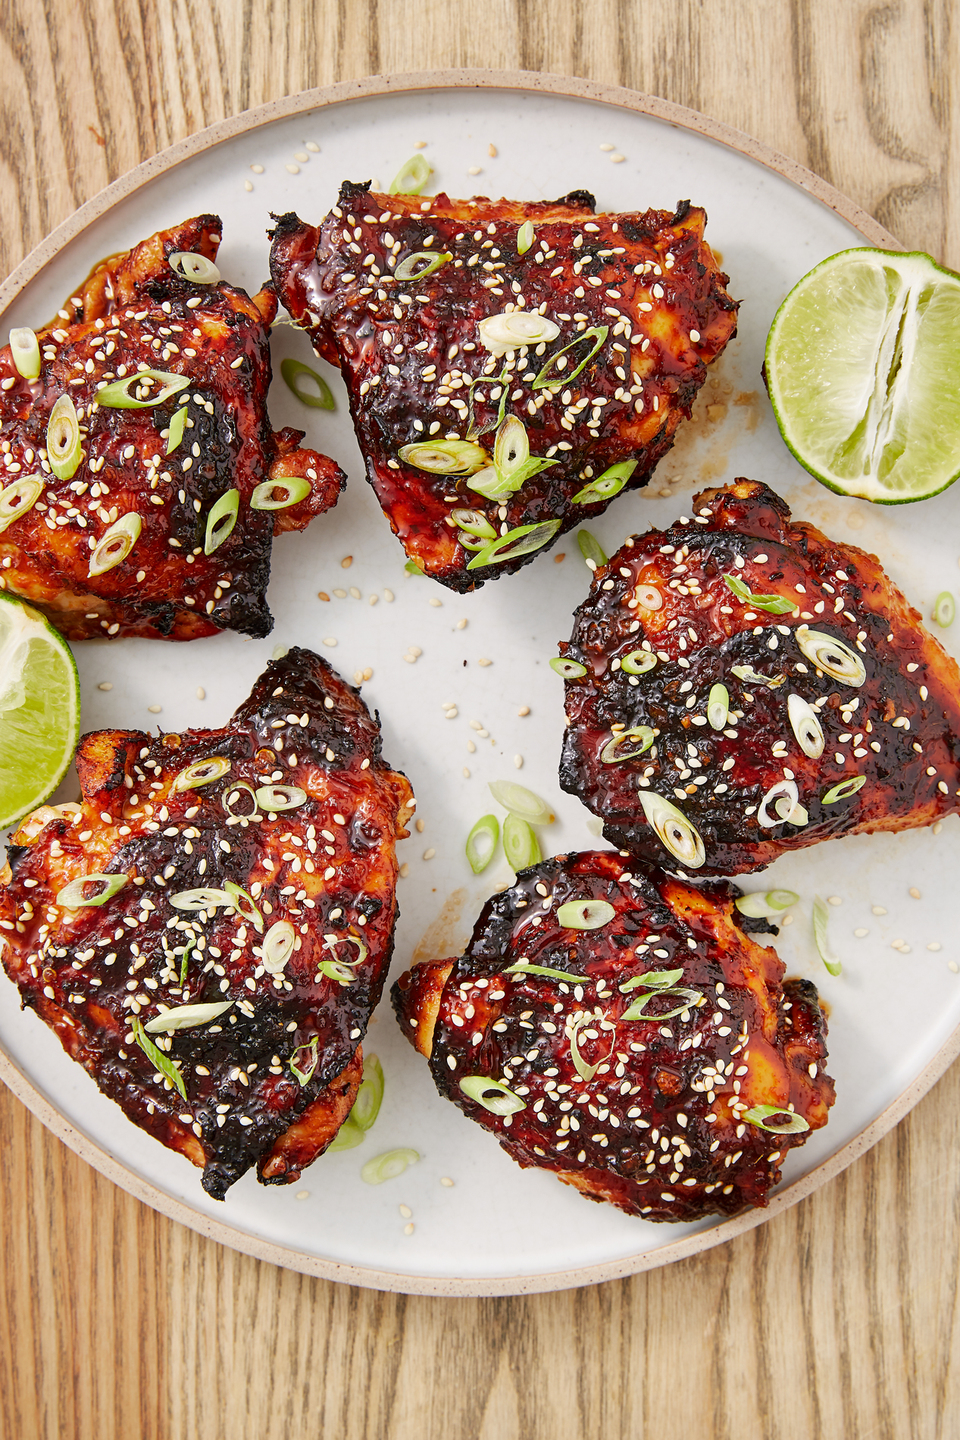 "<p>You'll lose your mind over the sticky glaze. </p><p>Get the recipe from <a href=""https://www.delish.com/cooking/recipe-ideas/a28438728/air-fryer-chicken-thighs-recipe/"" rel=""nofollow noopener"" target=""_blank"" data-ylk=""slk:Delish"" class=""link rapid-noclick-resp"">Delish</a>.</p>"